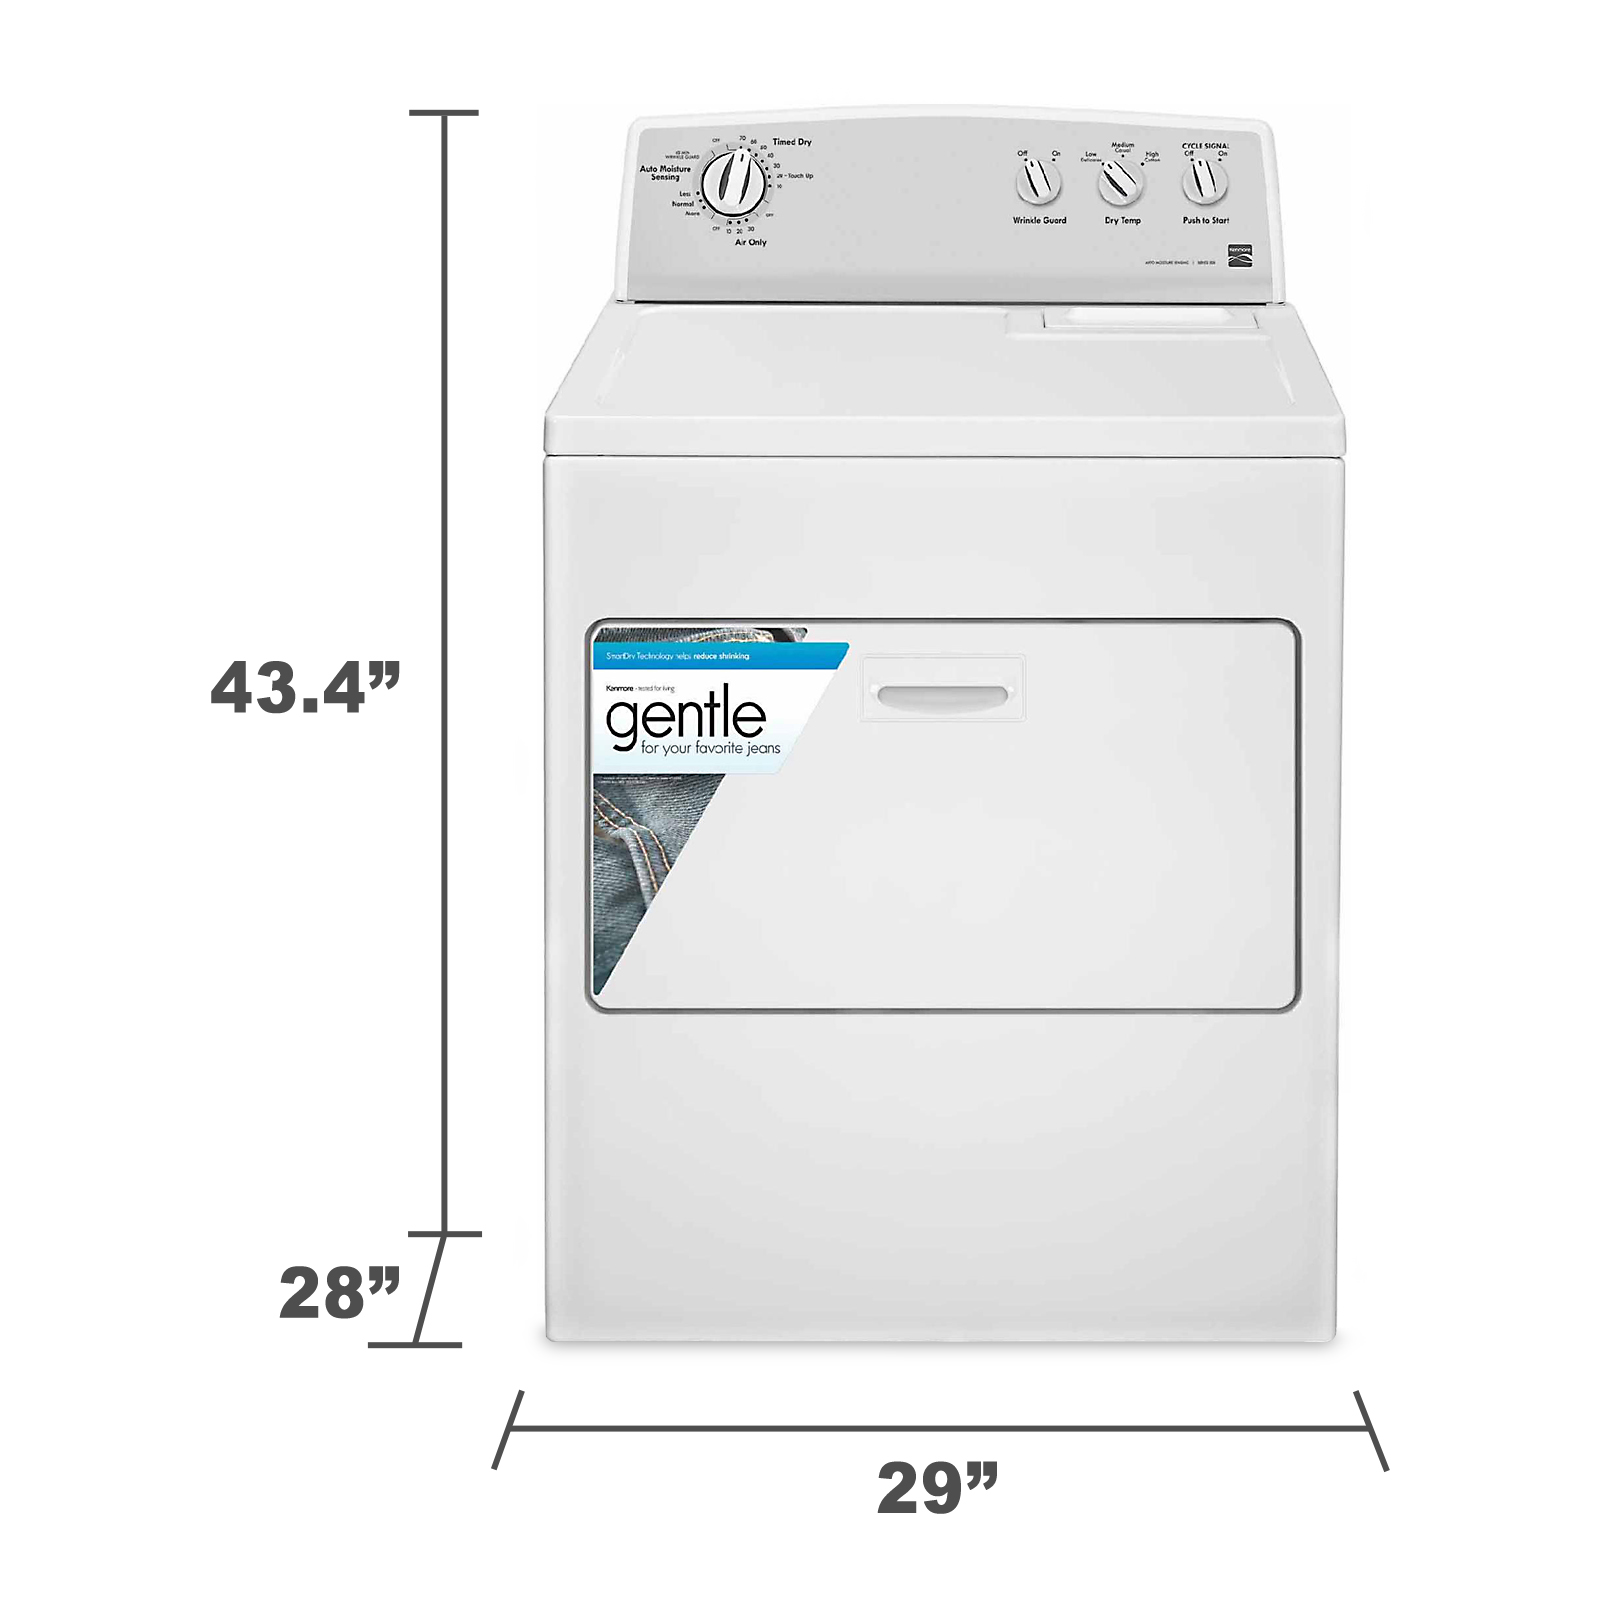 Kenmore 7.0 cu. ft. Gas Dryer w/ SmartDry™ - White